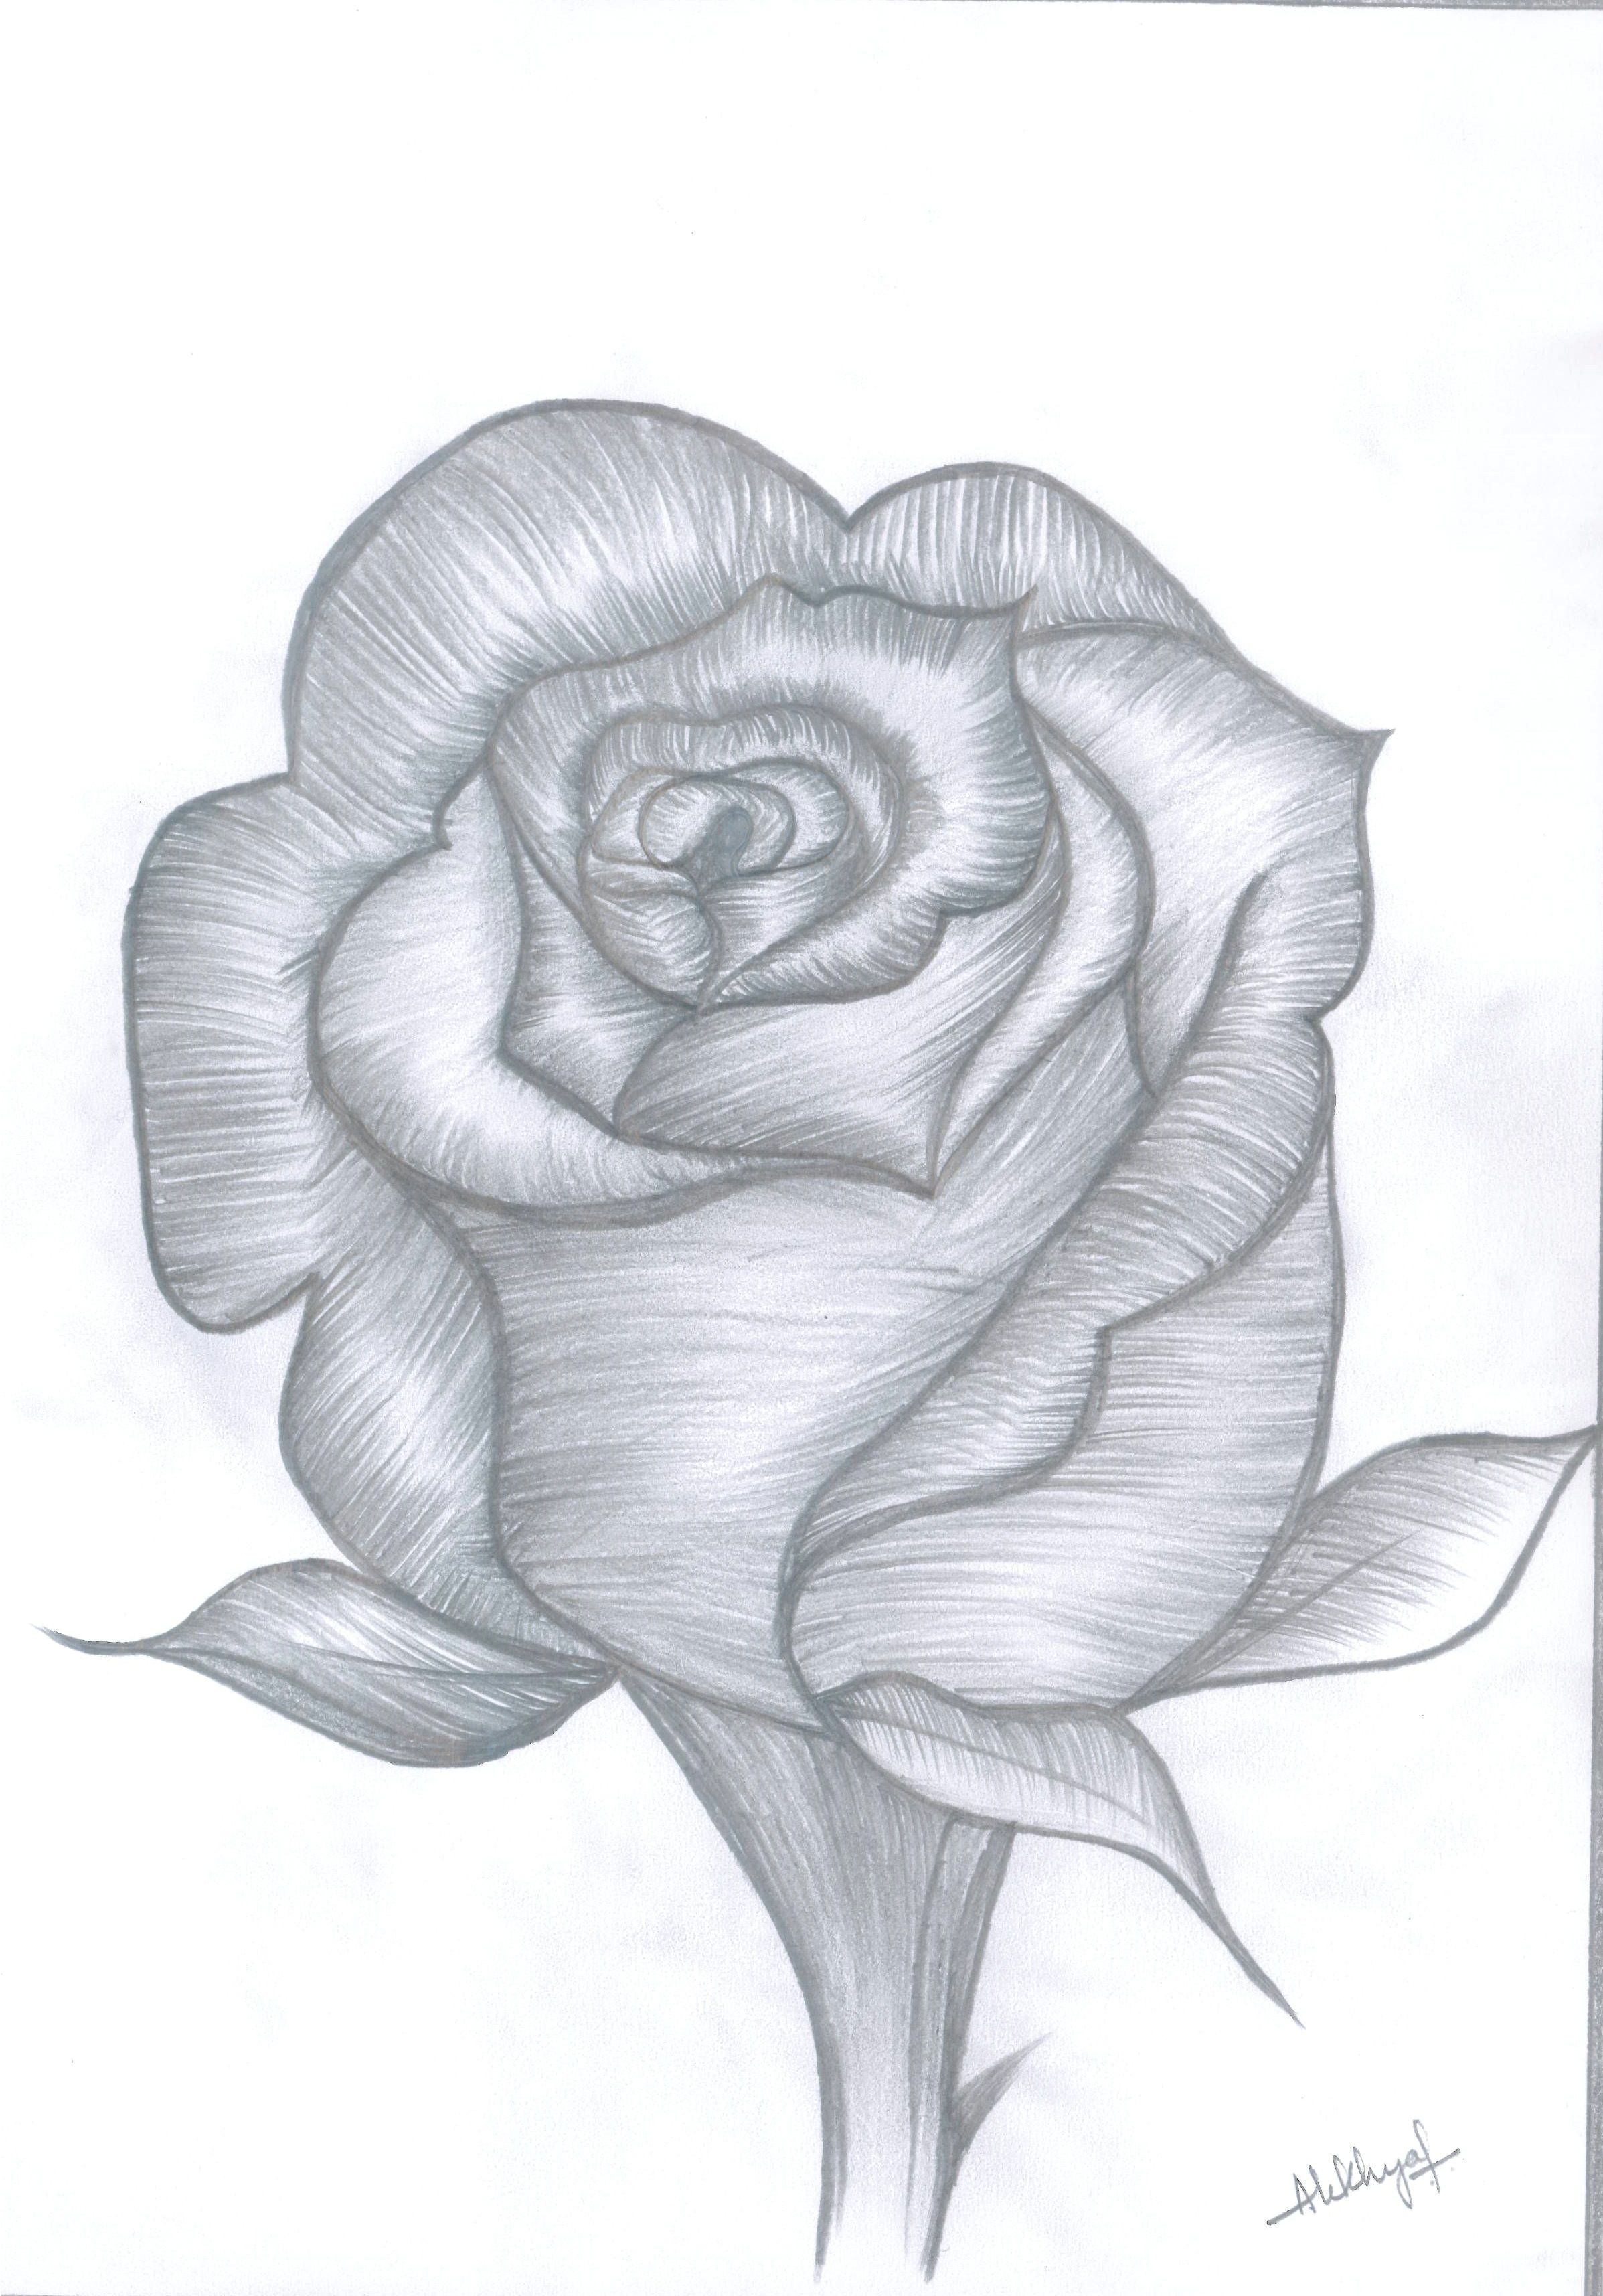 Drawing A Rose Bud Rose Bud Drawings In 2018 Pinterest Draw Rose Buds and Pencil